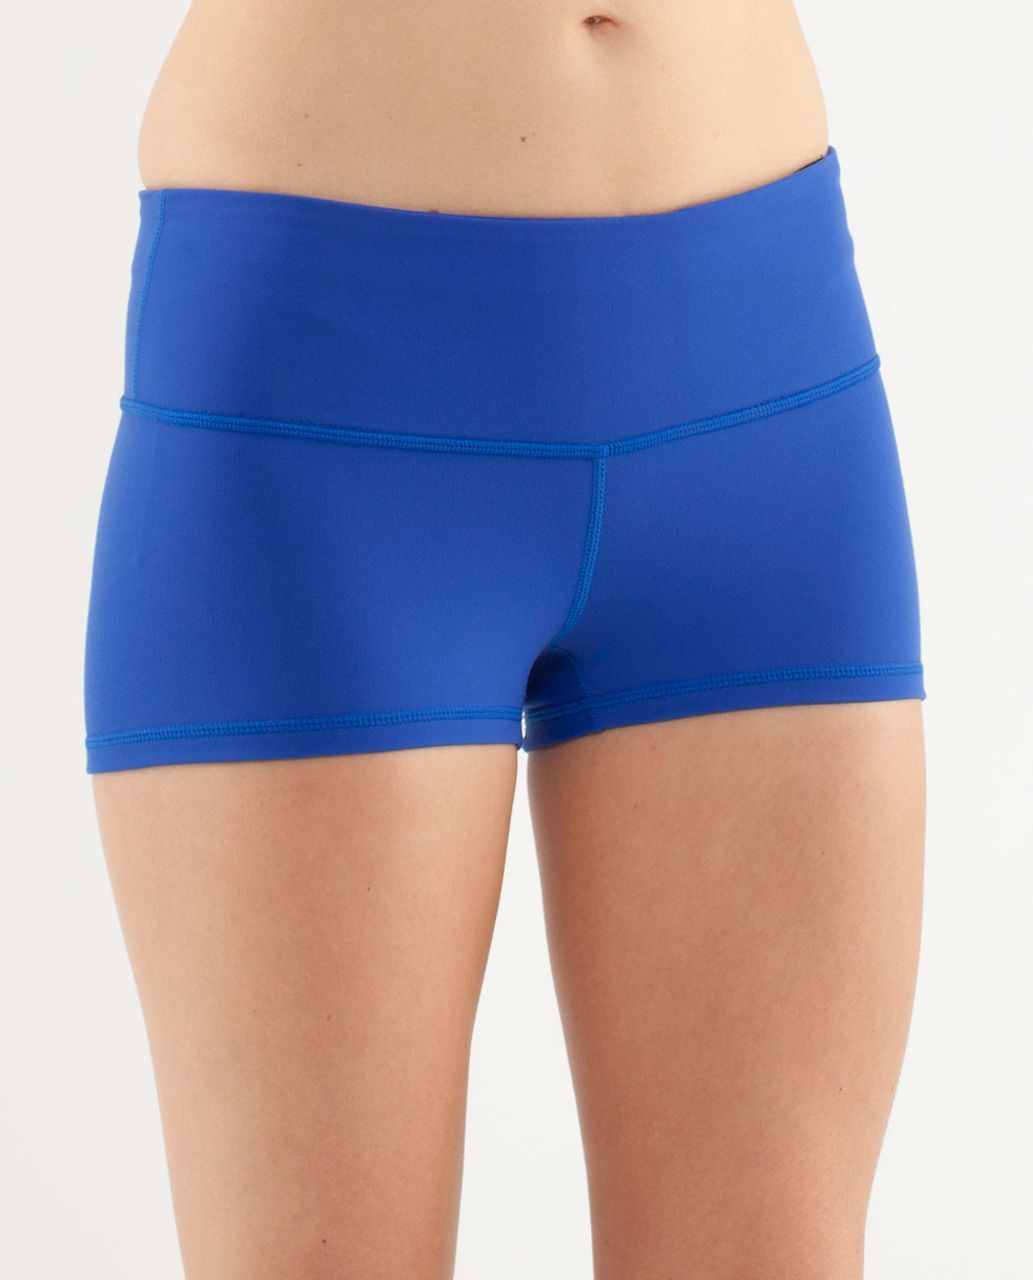 Lululemon Boogie Short - New Blue